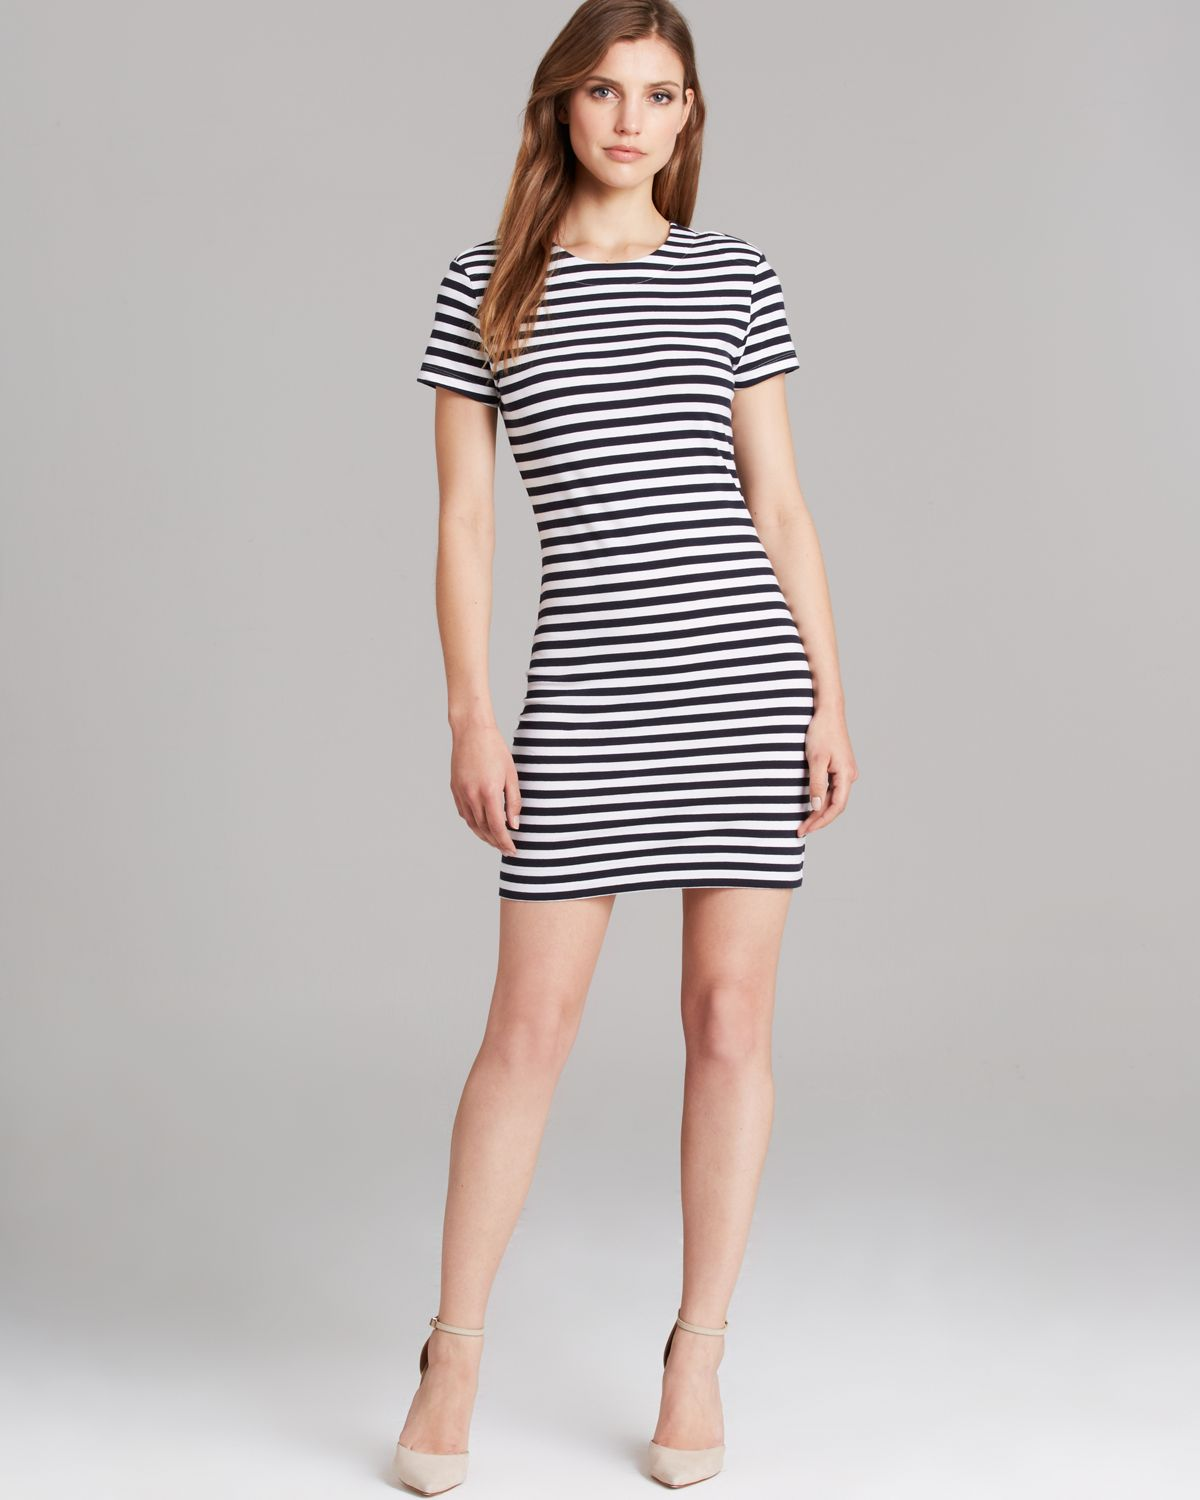 FRENCH CONNECTION Dress - Sienna Stripe | Bloomingdale's